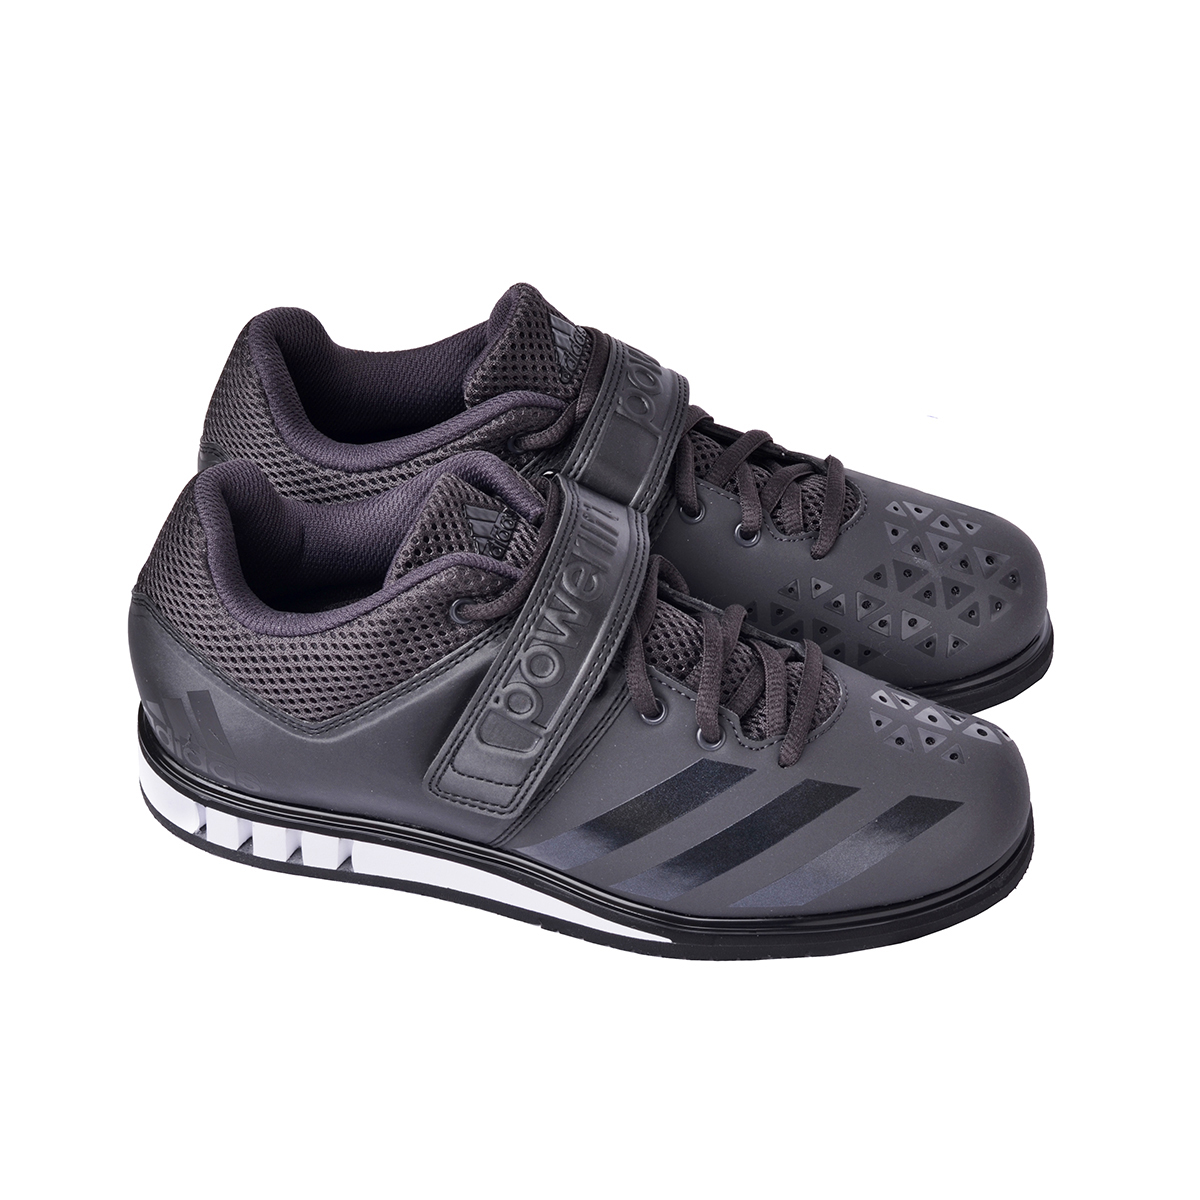 8d6258268086 Adidas Powerlift 3 Weightlifting Shoes in Black and White